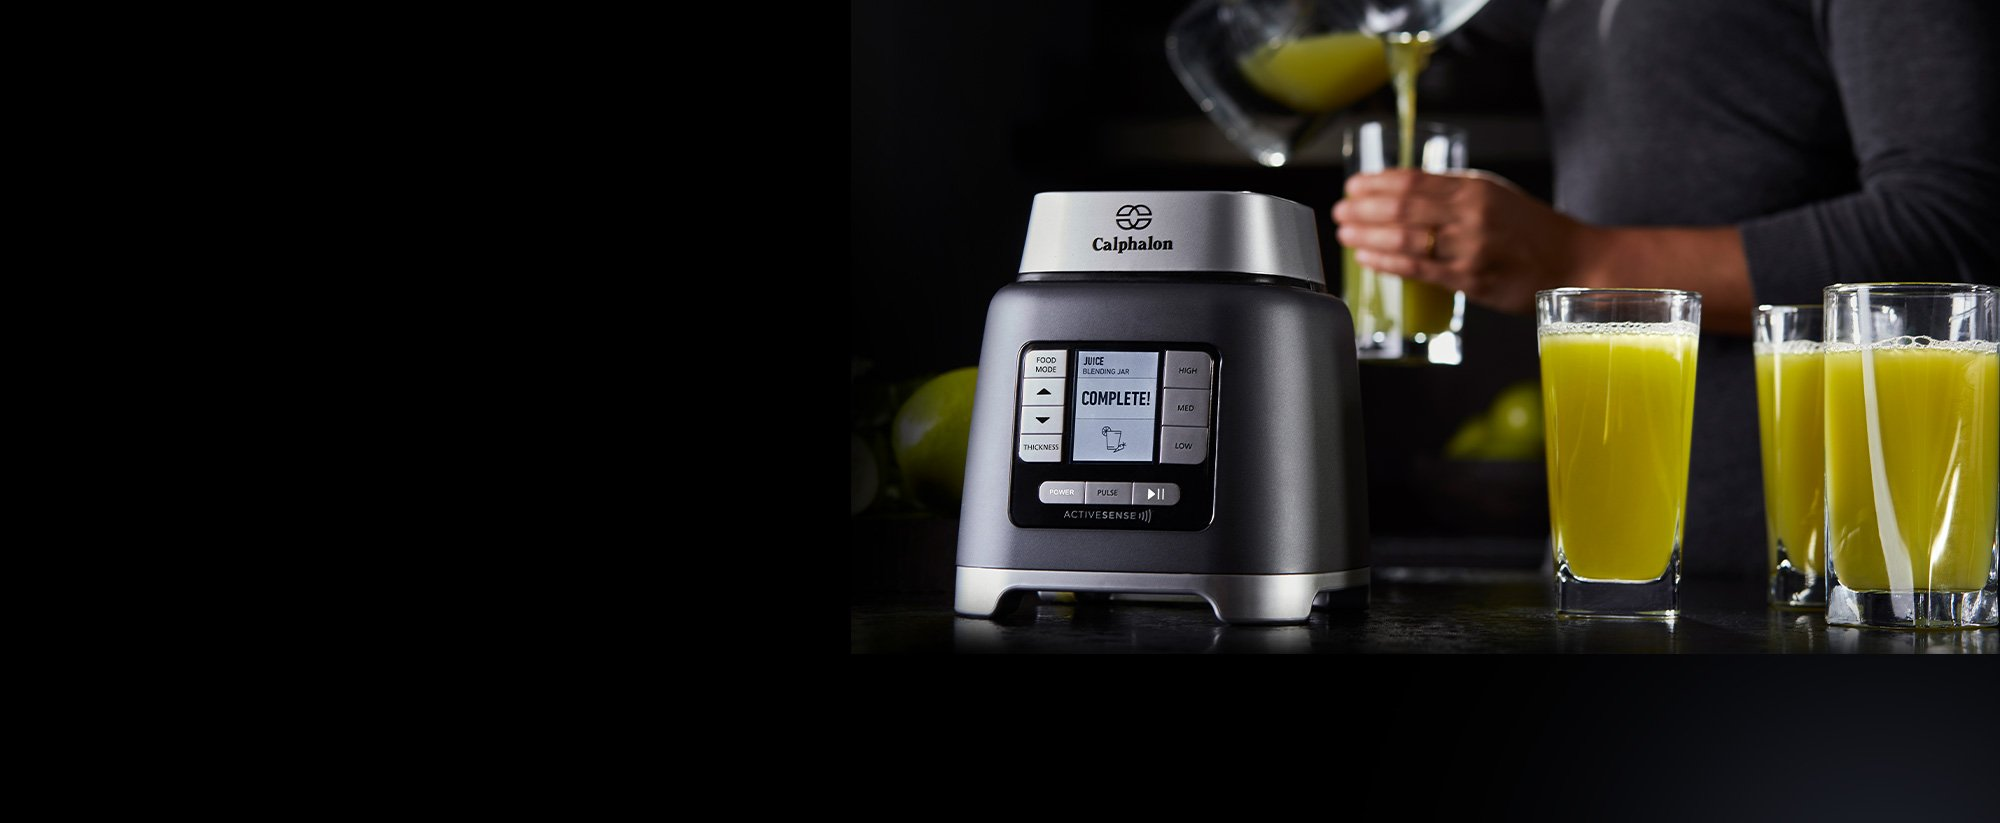 Calphalon Activesense blender